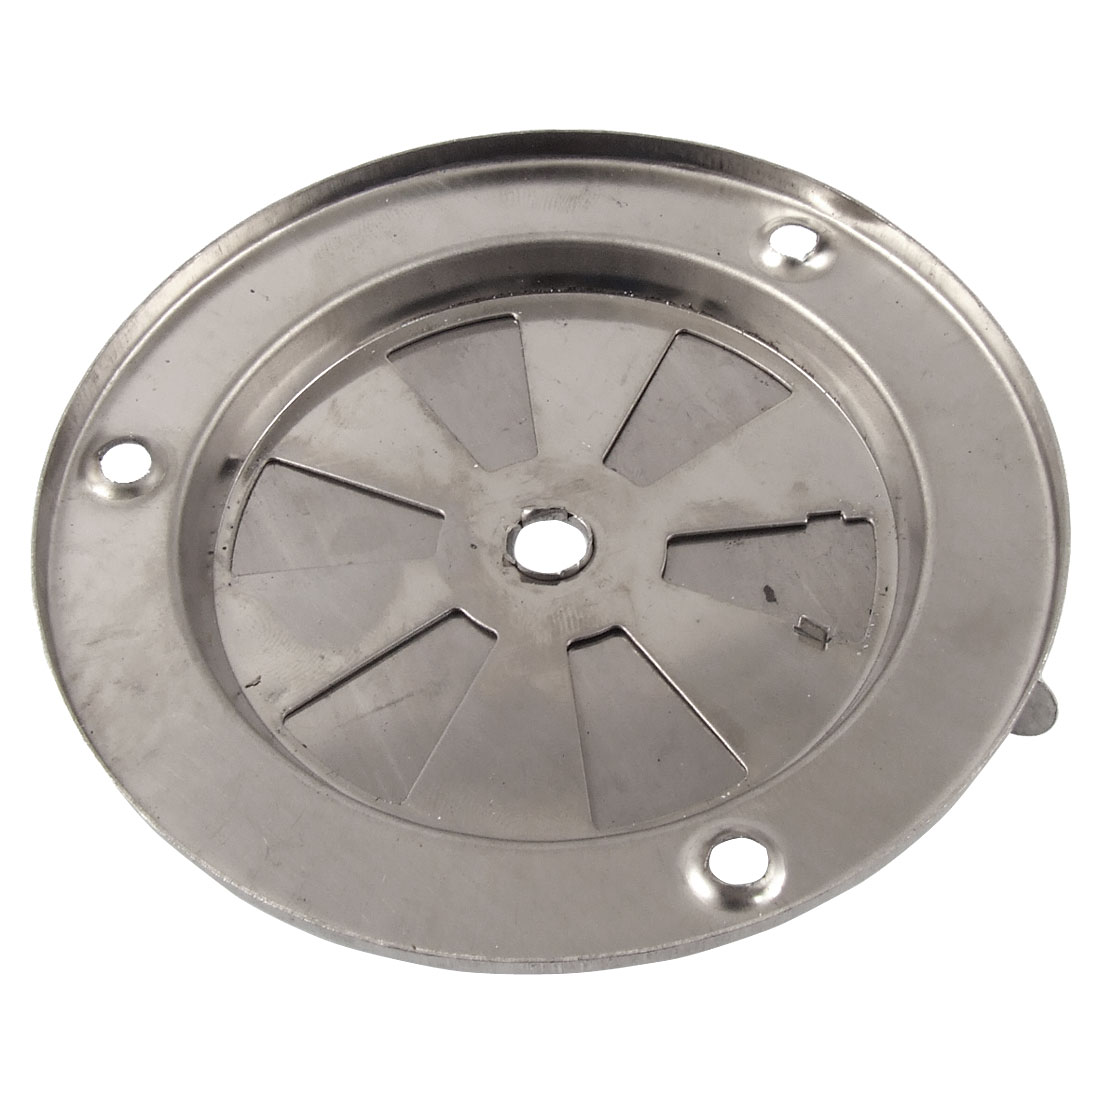 Kitchen Water Leak Lockable Stainless Steel Round Floor Drain Cover 3.7""